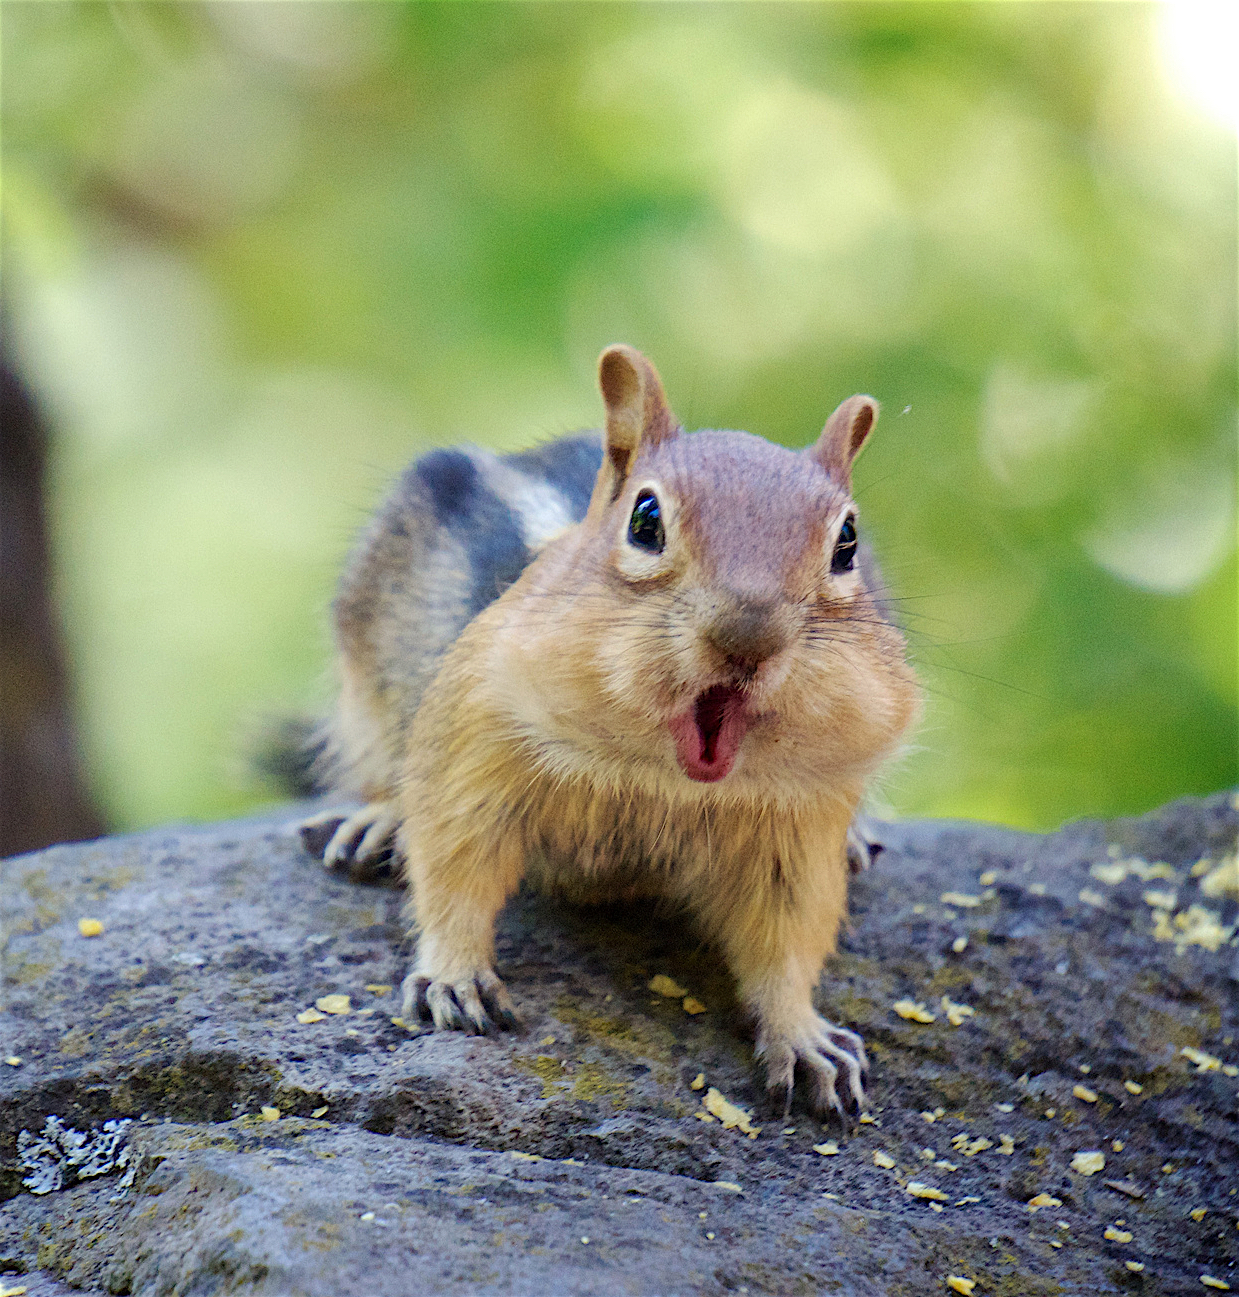 About chipmunks welcome wildlife a chipmunk with its mouth open and chattering at the camera sciox Images